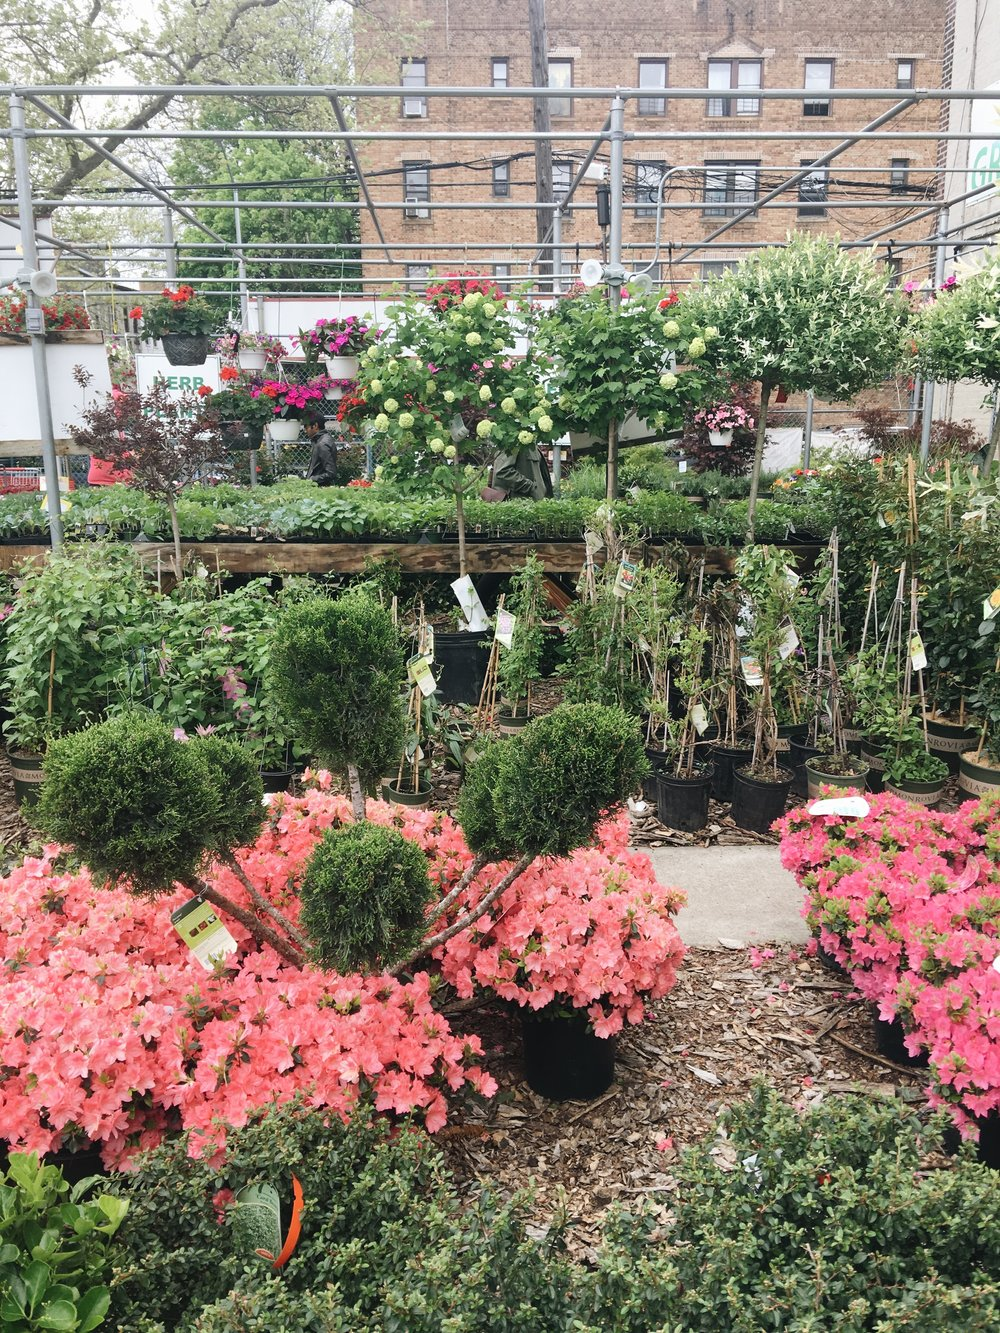 How to make a terrace garden - You Can Make These Principles Work Whether Your Outdoor Space Is A Yard Terrace Balcony Or Fire Escape Questionmark Is This Legal In Nyc